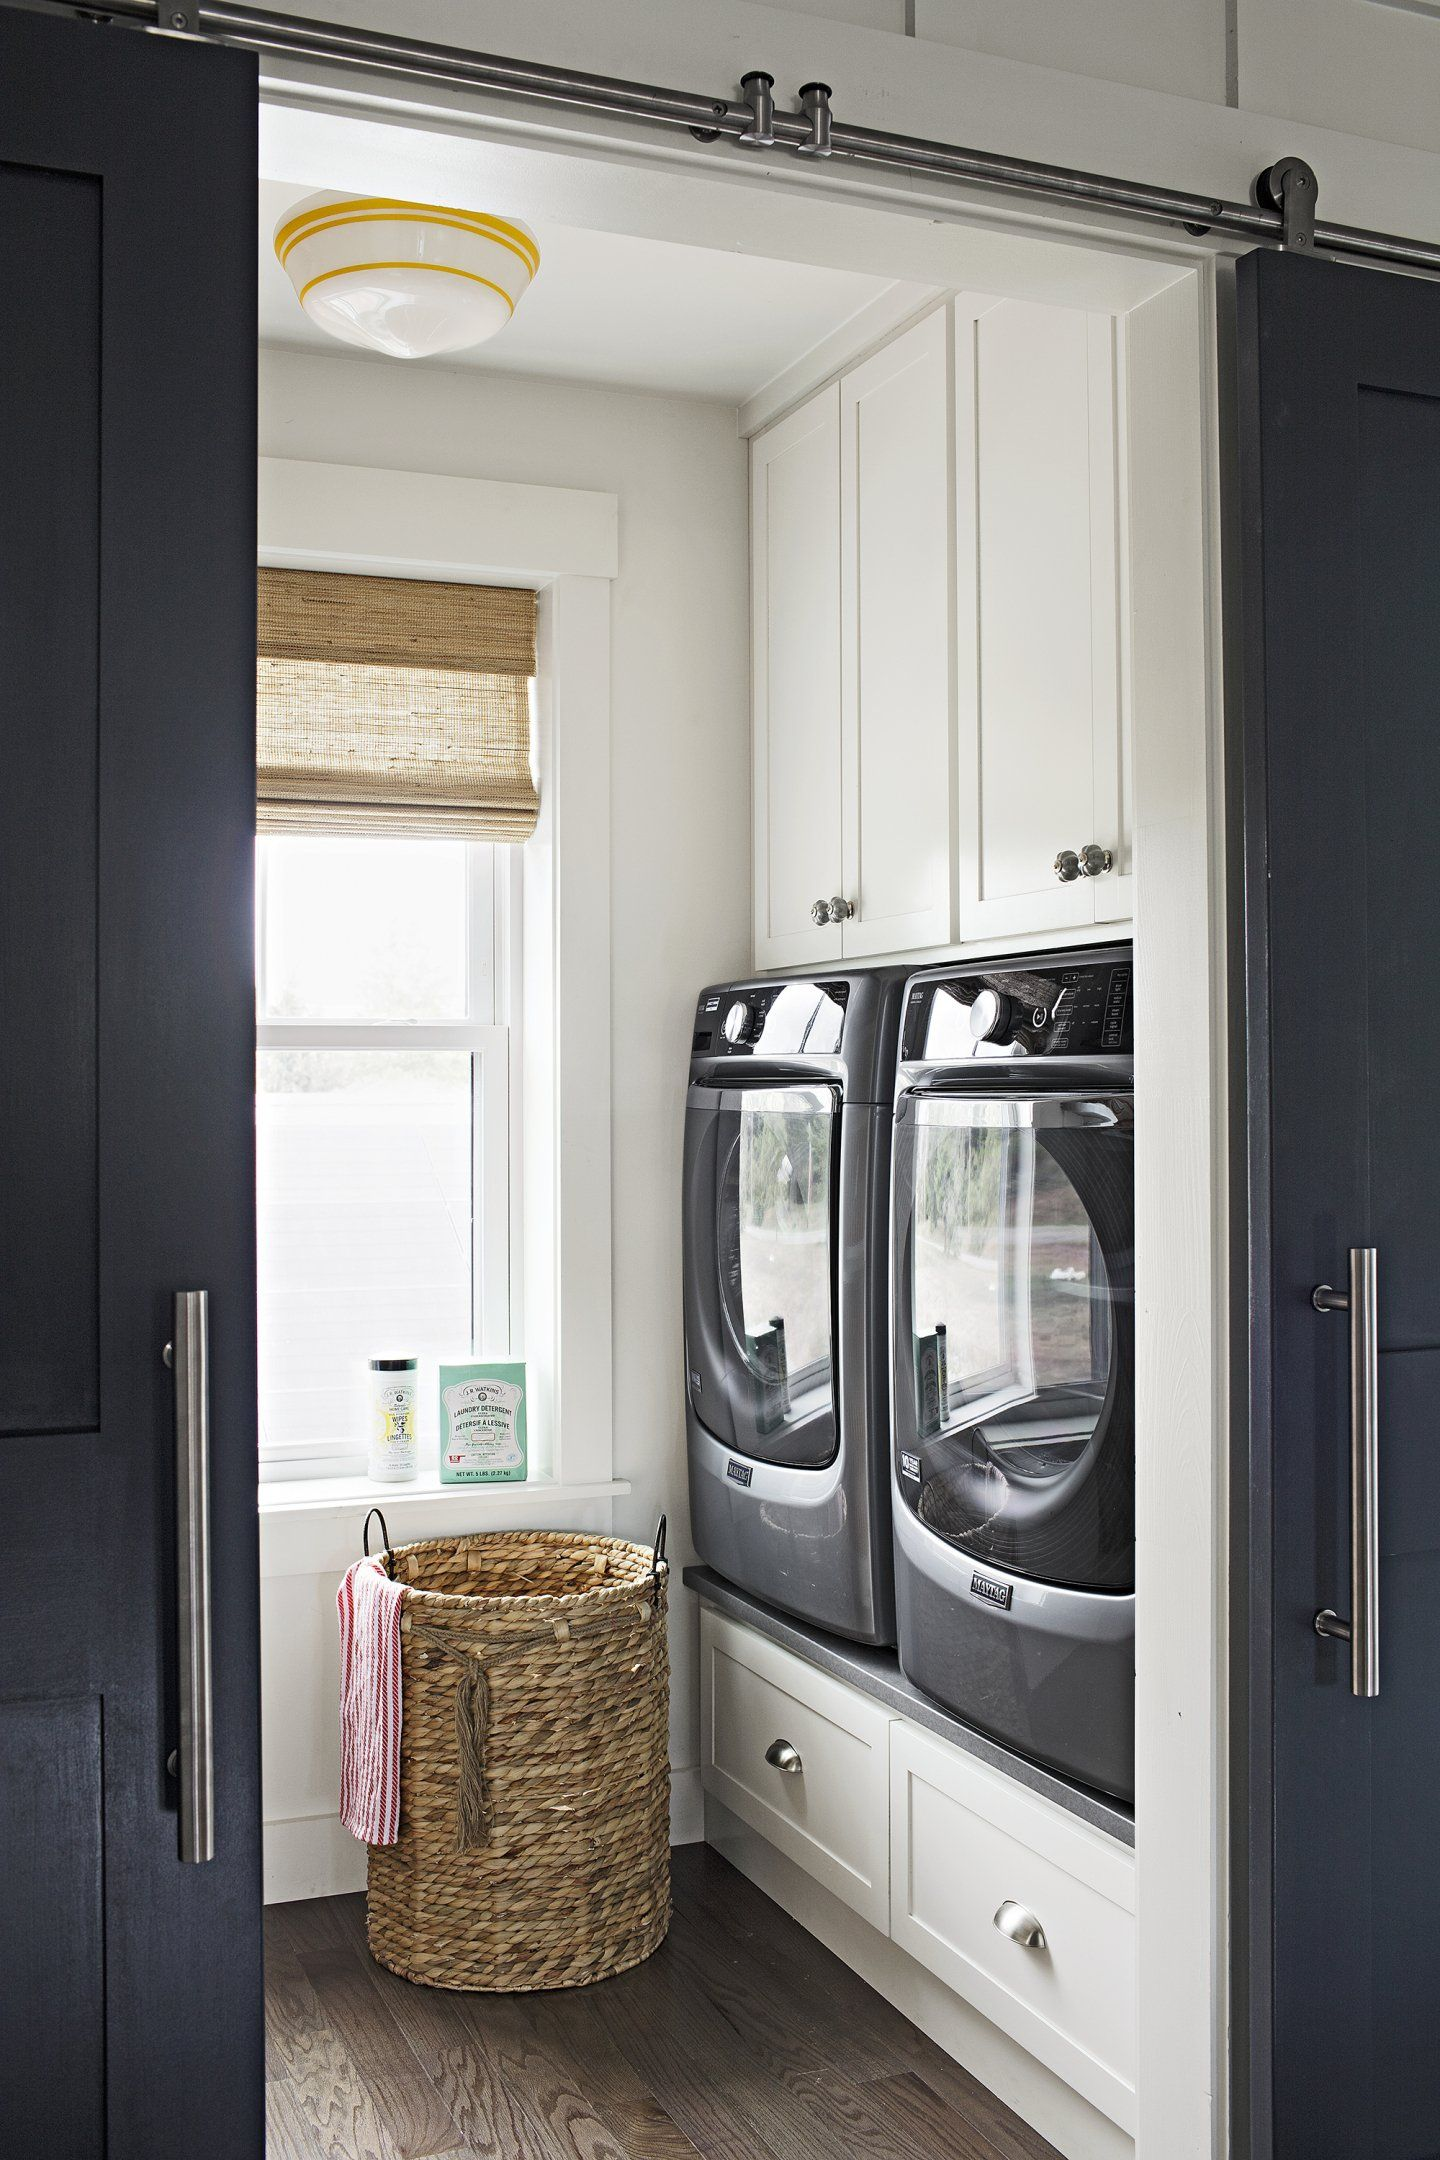 Utility Sink In Laundry Room Makeover